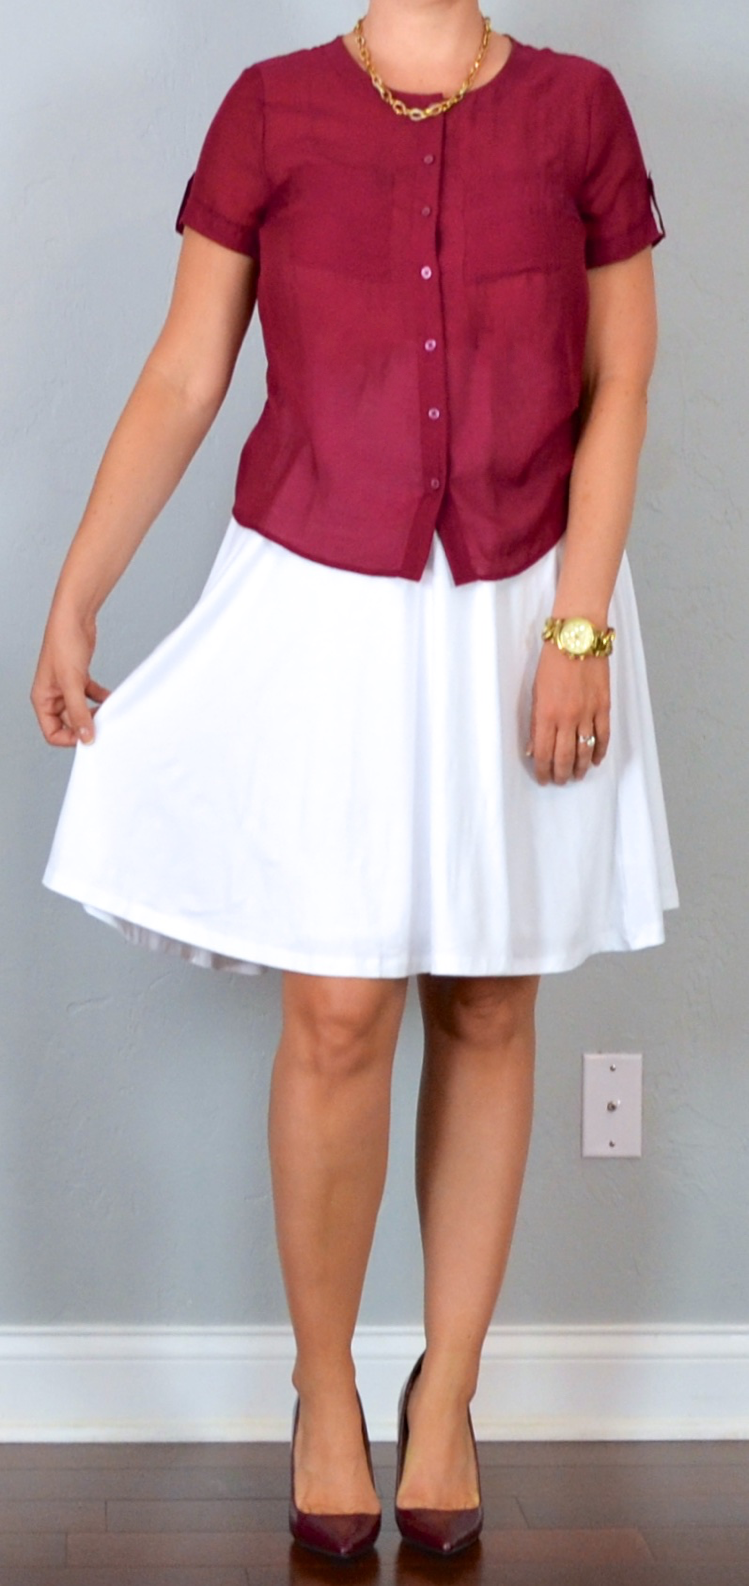 55f11f3db629 outfit post: maroon camp shirt, white midi skirt, burgundy pointed toe pumps